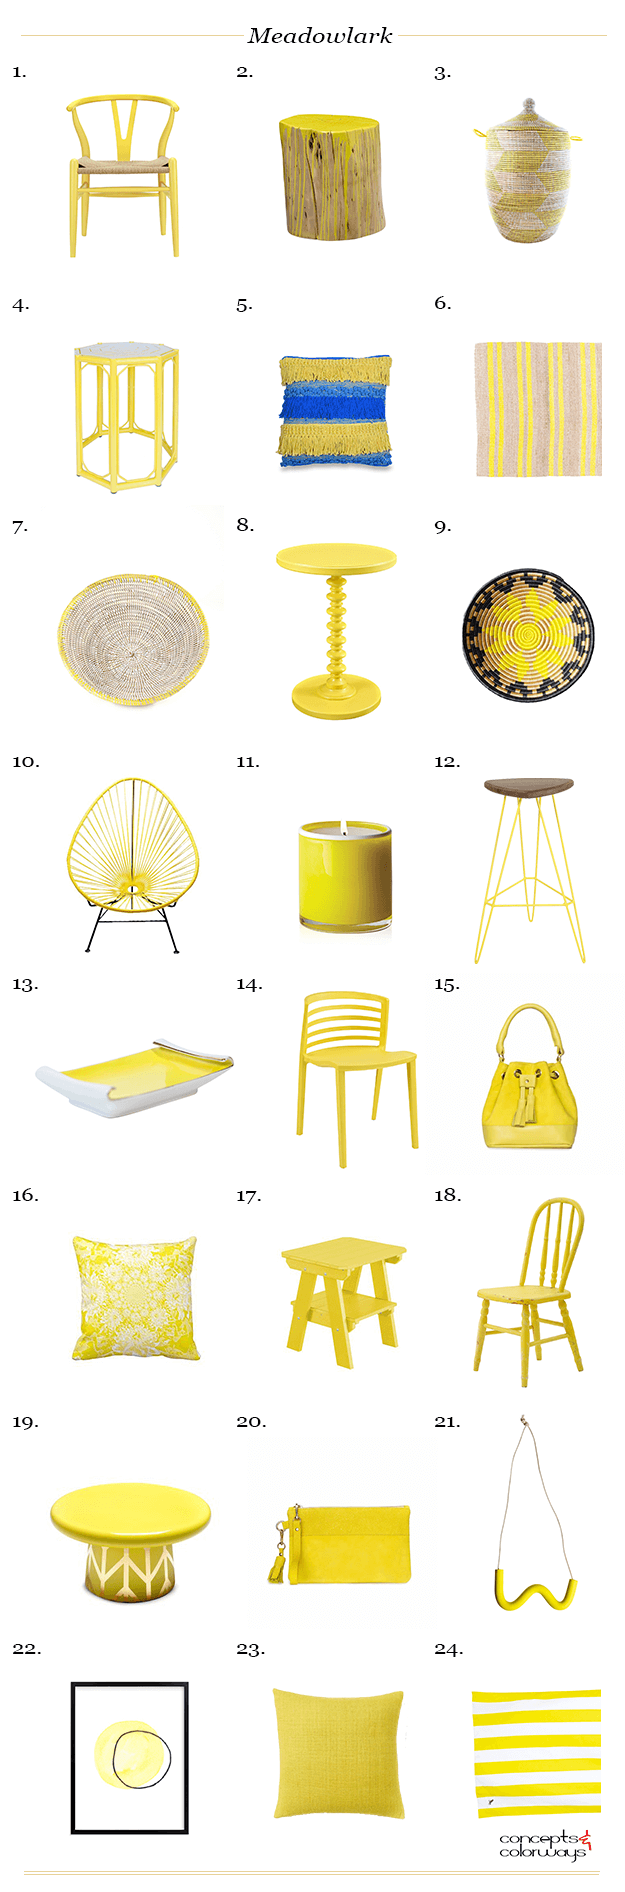 pantone meadowlark interior design product roundup